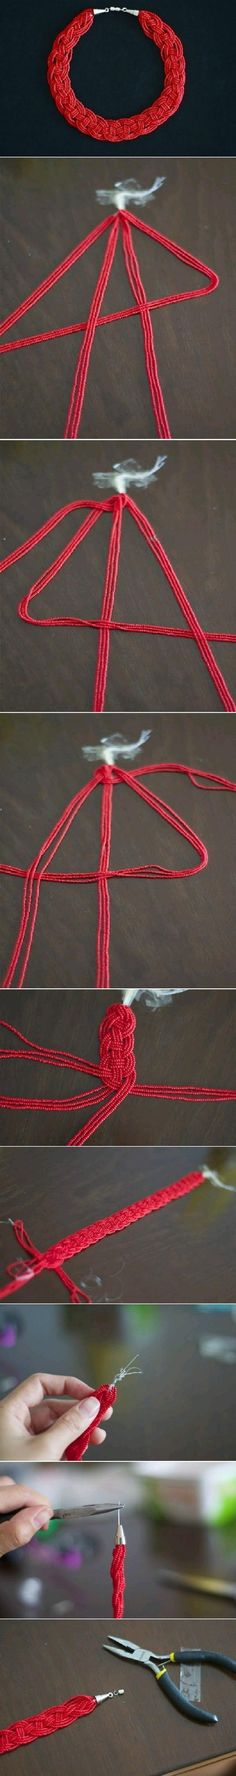 DIY Pretty Necklace. Can make this a bracelet too!